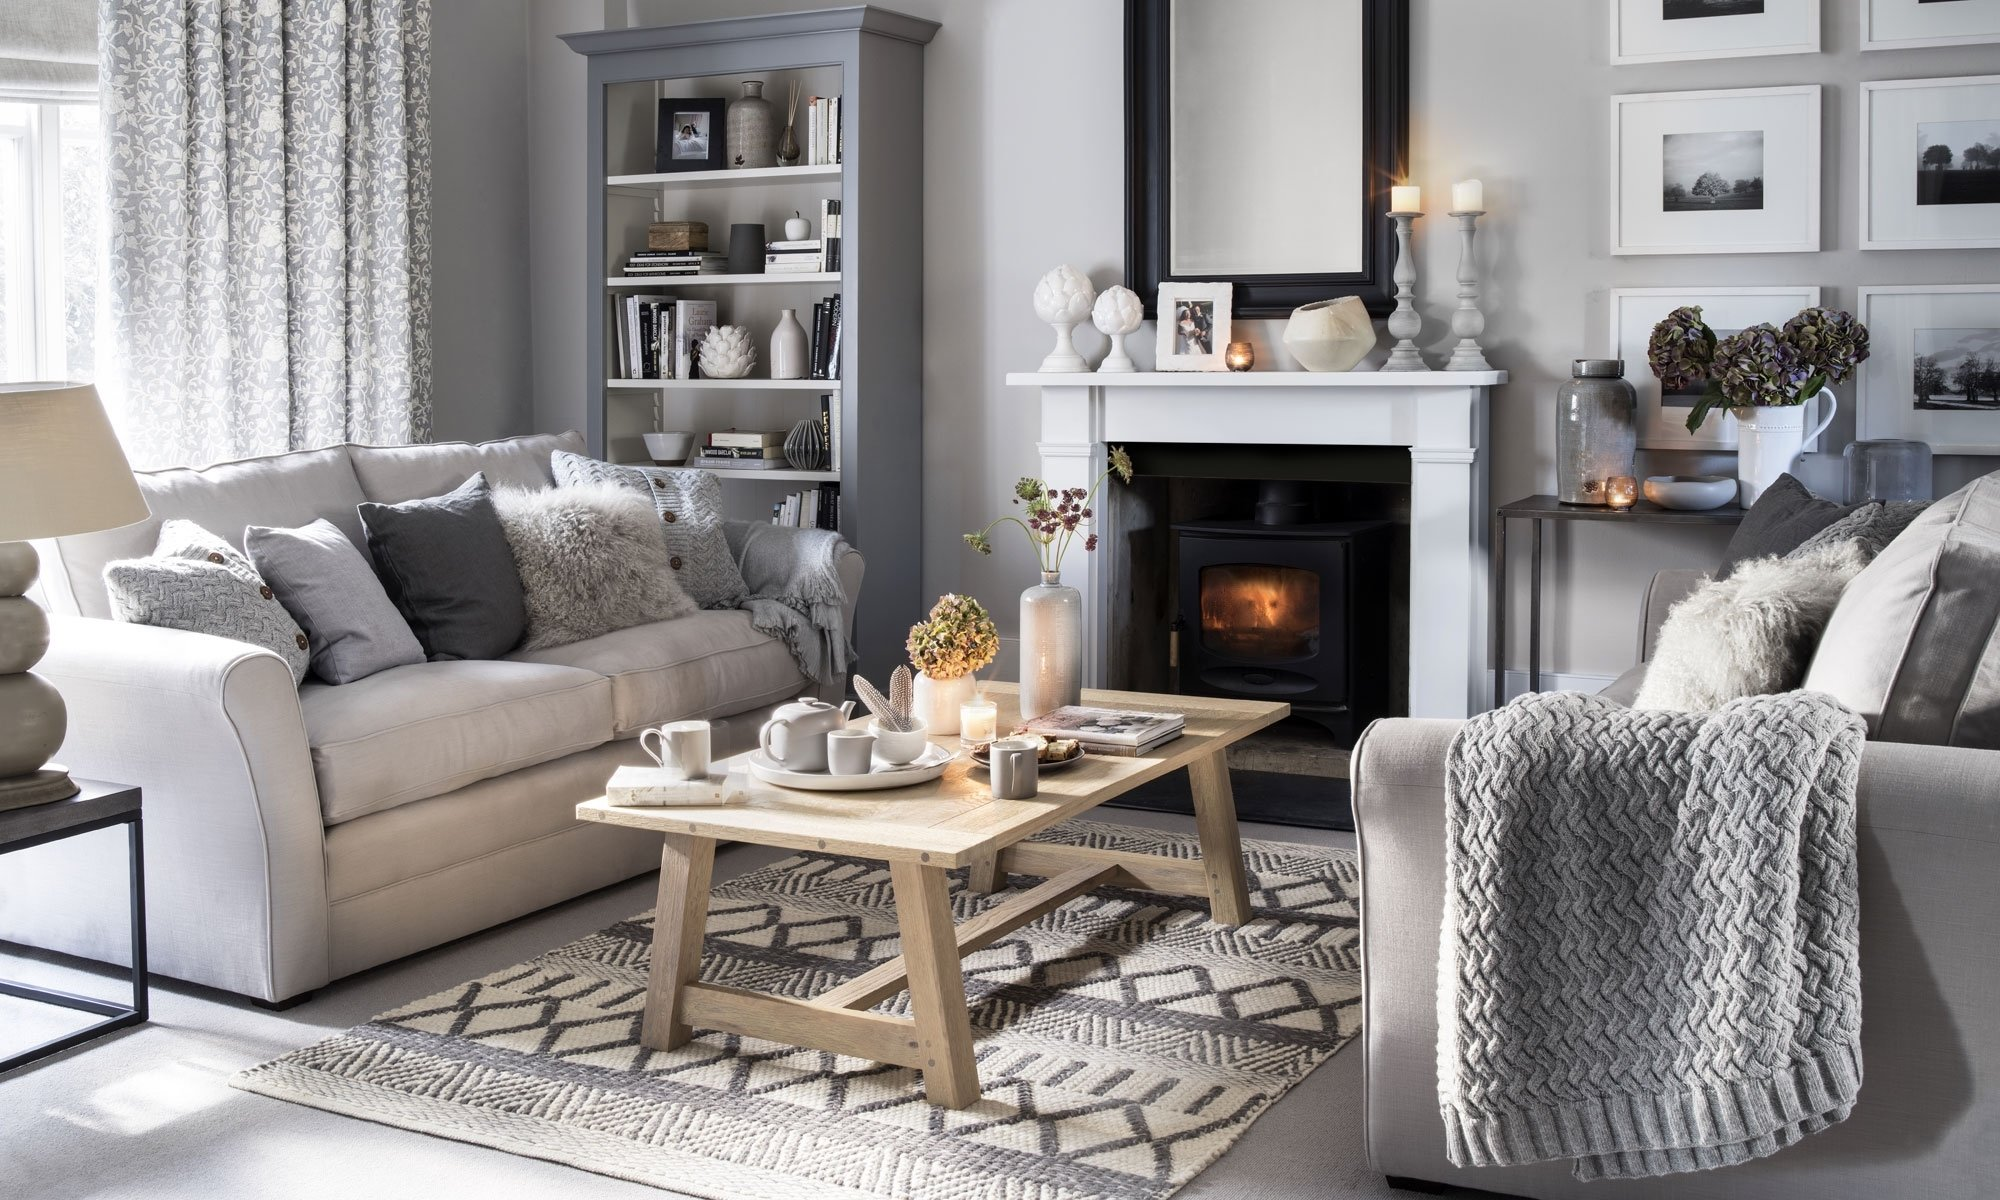 10 Perfect Furniture Ideas For Living Room living room ideas designs and inspiration ideal home 8 2020